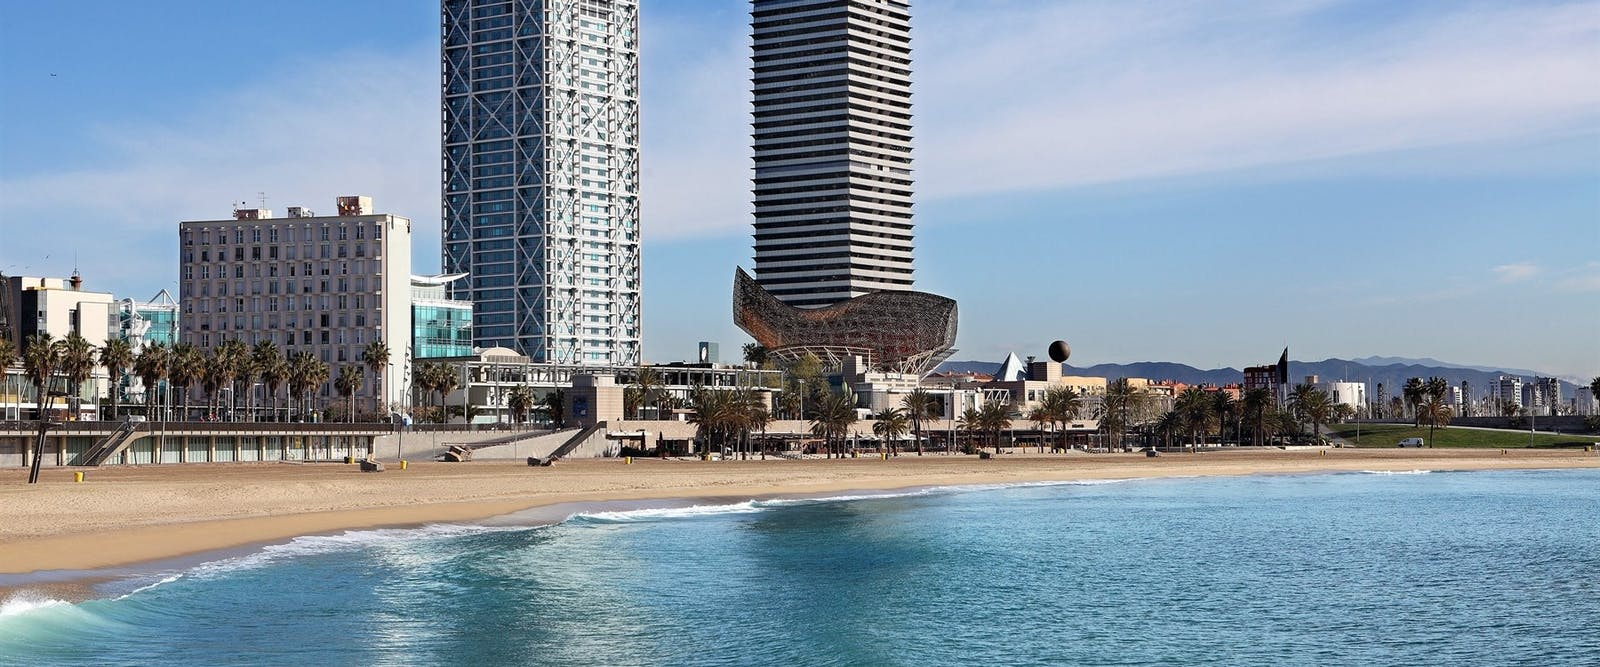 Beach View at Hotel Arts, Barcelona, Spain